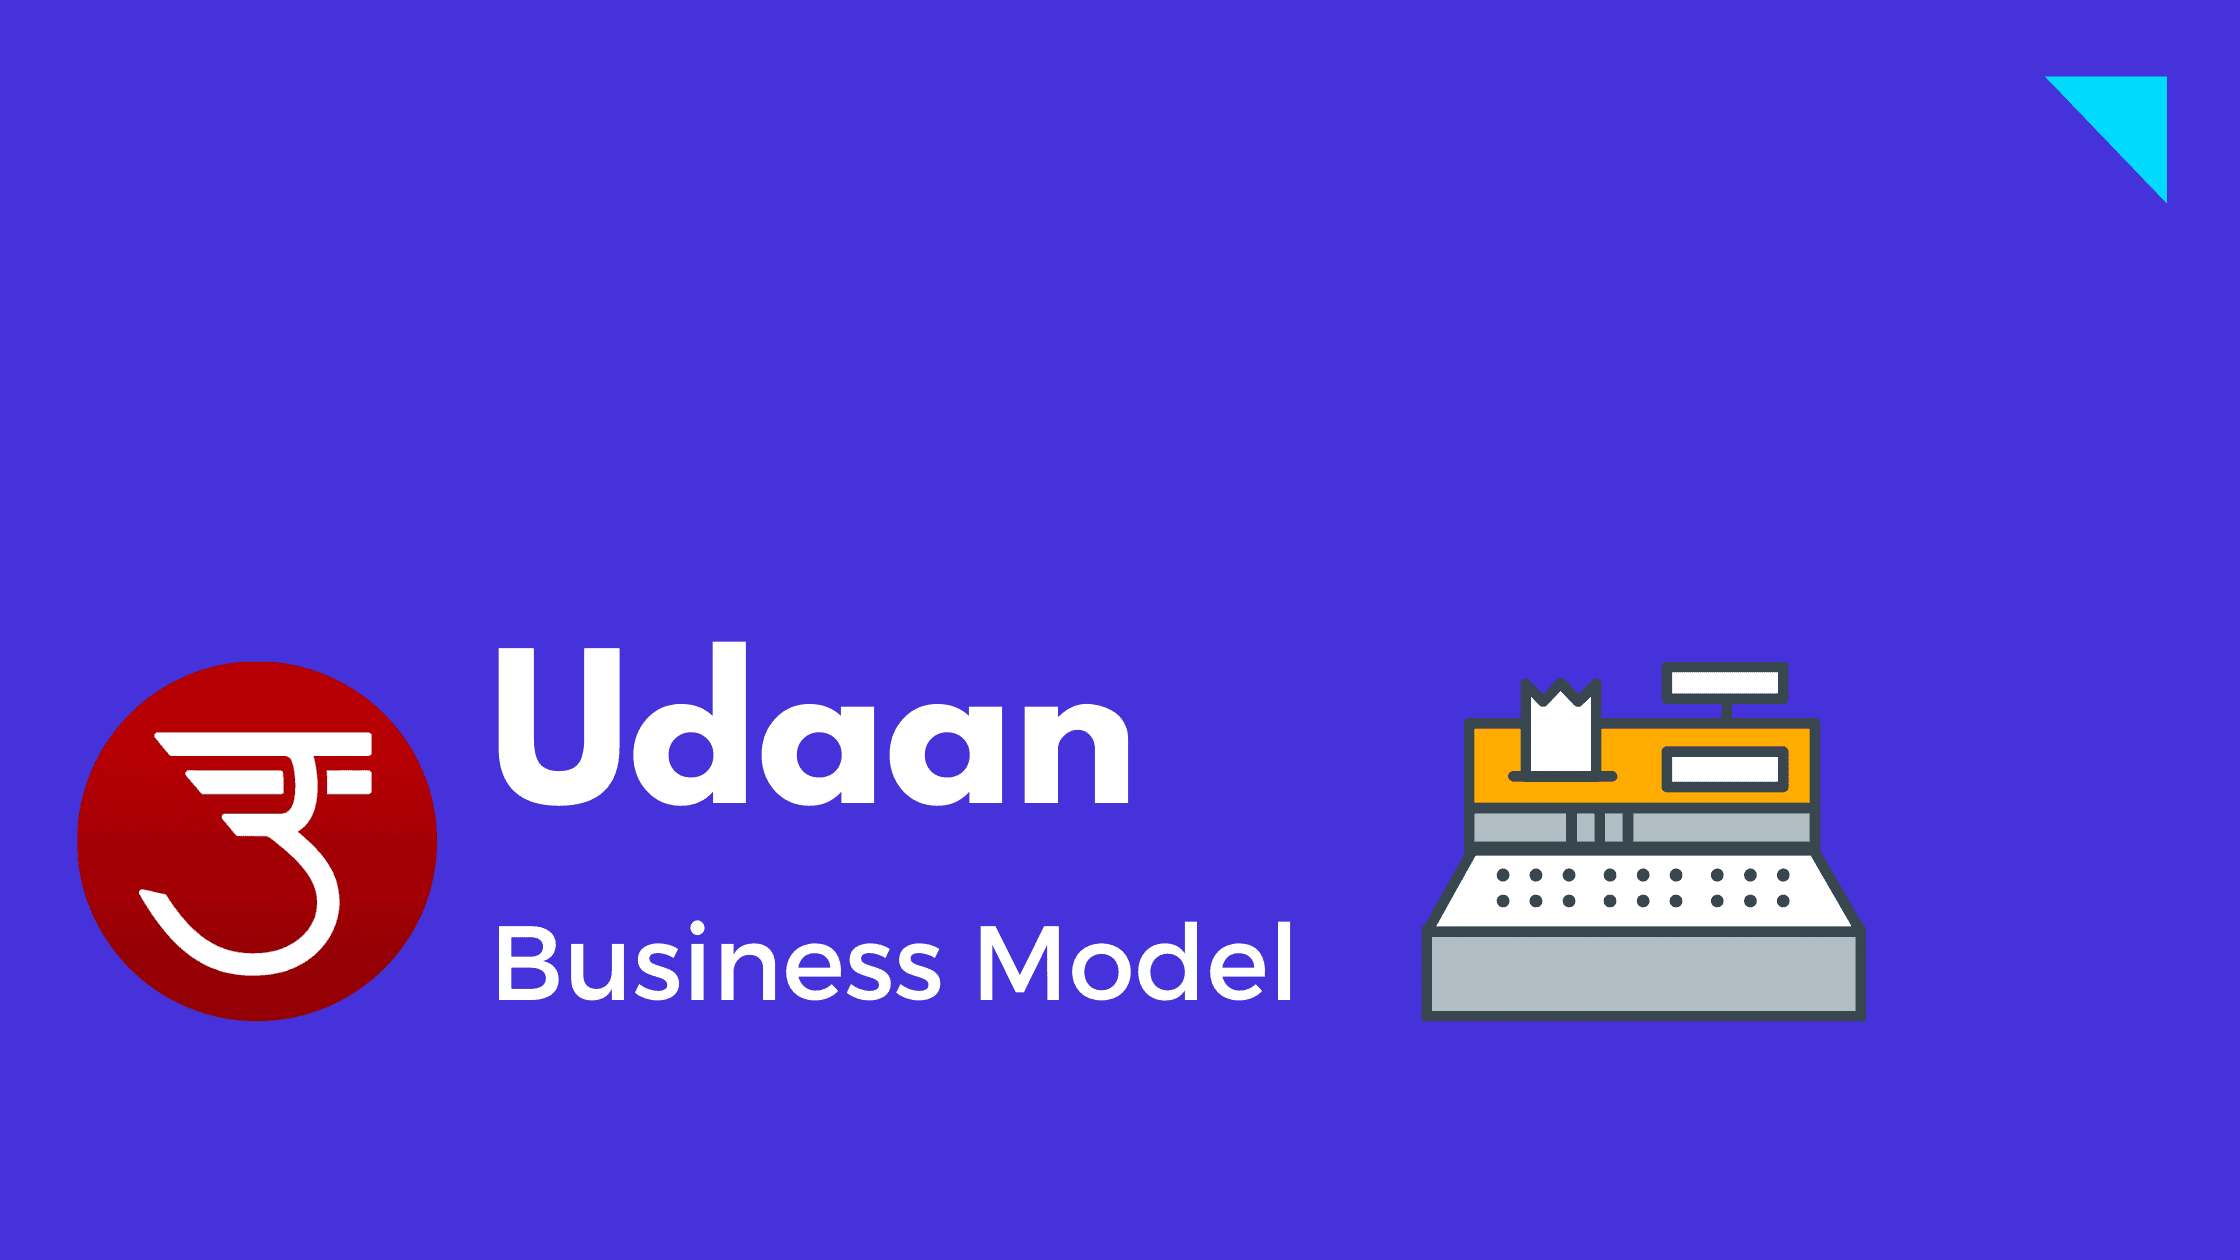 Udaan - Business Model - Featured Image